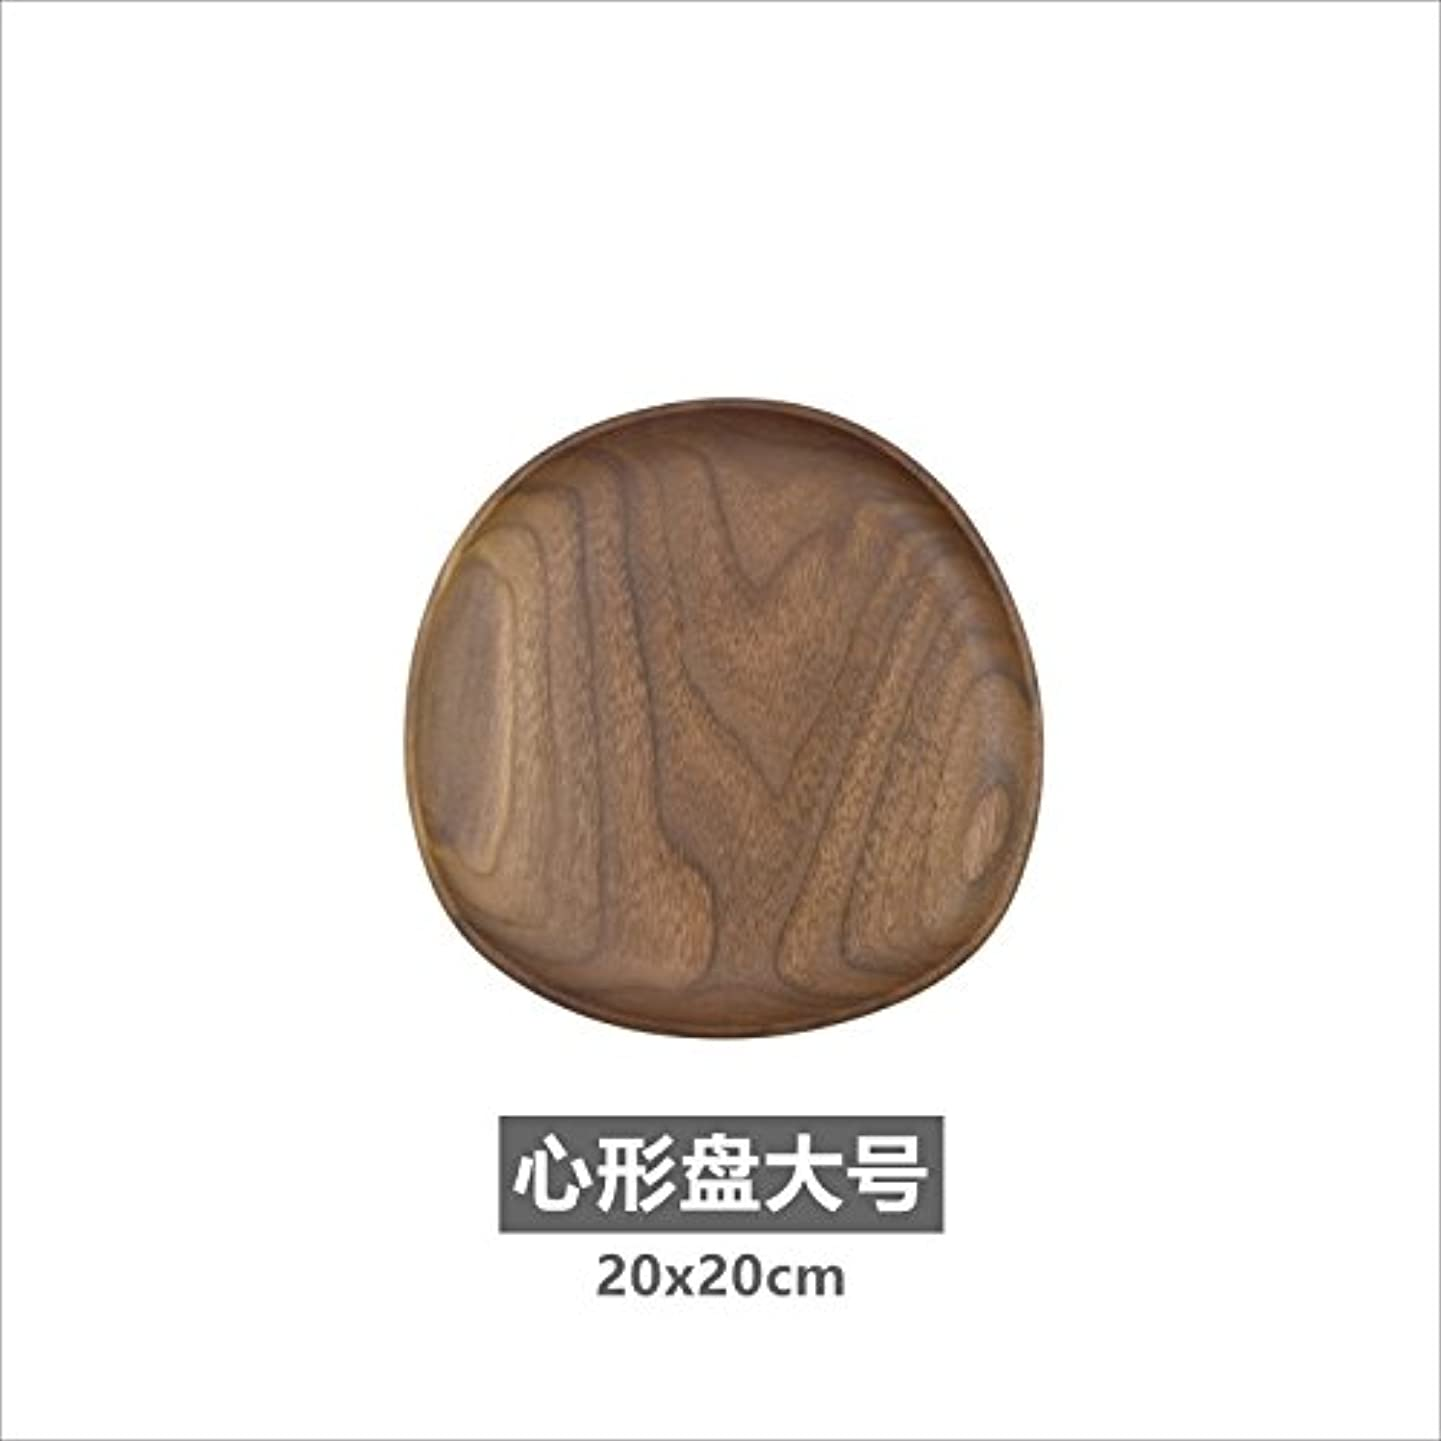 Whole Wood Black Walnut Shaped Plate Oval Wooden Plate Fruit Plate Wooden Dish Tray Wood Manual 20X20Cm